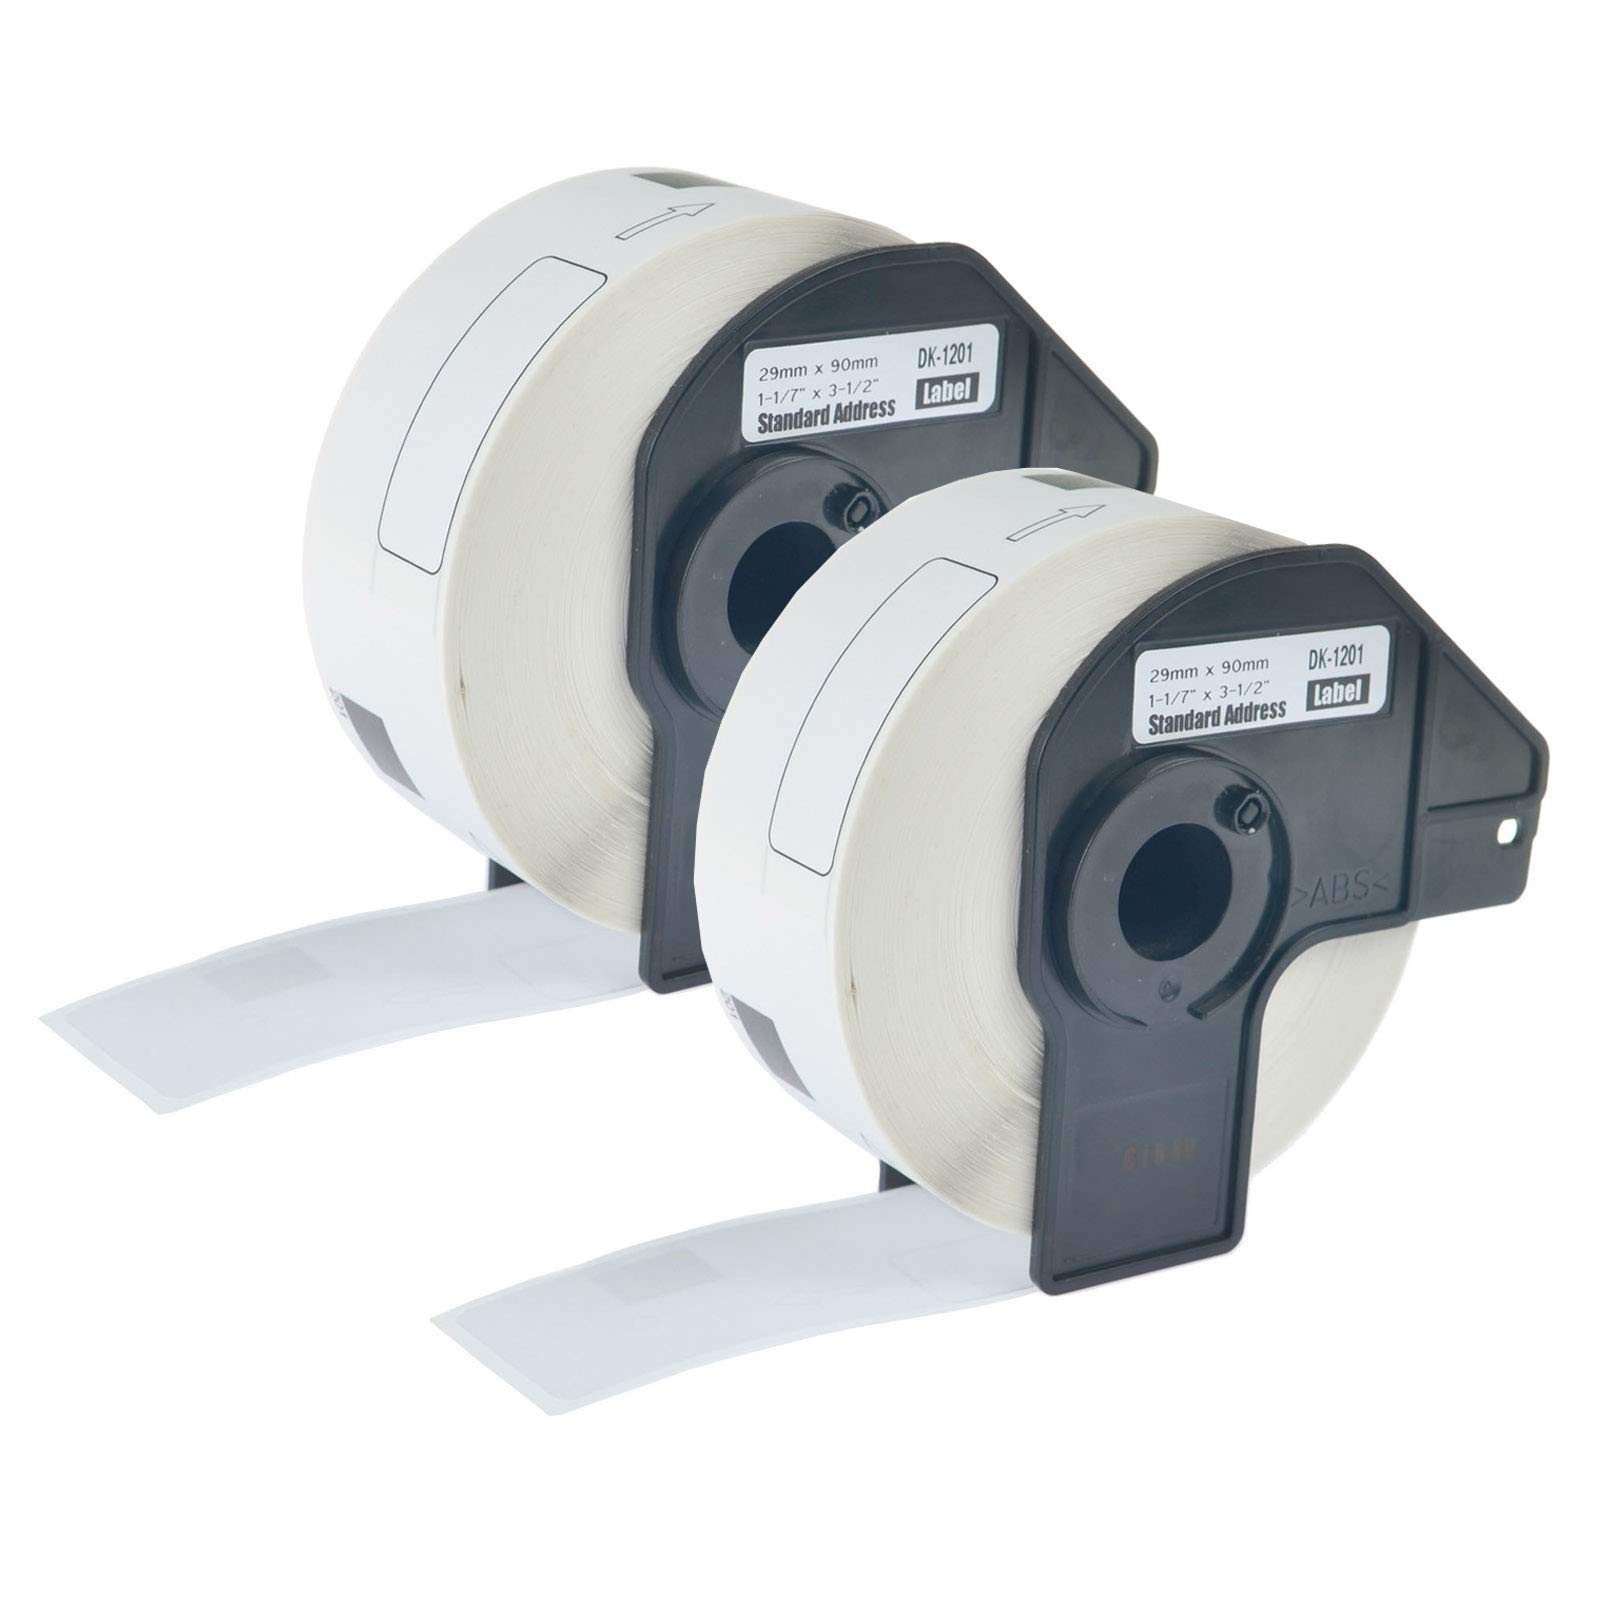 KCYMTONER 2 Rolls of Compatible Brother DK-1201 White Continuous Length Paper Tape Labels 29mm x 90mm (1-1/7'' 3-1/2'') for QL-500 QL-570VM QL-580N QL-1050 QL-1060N Series with Cartridge